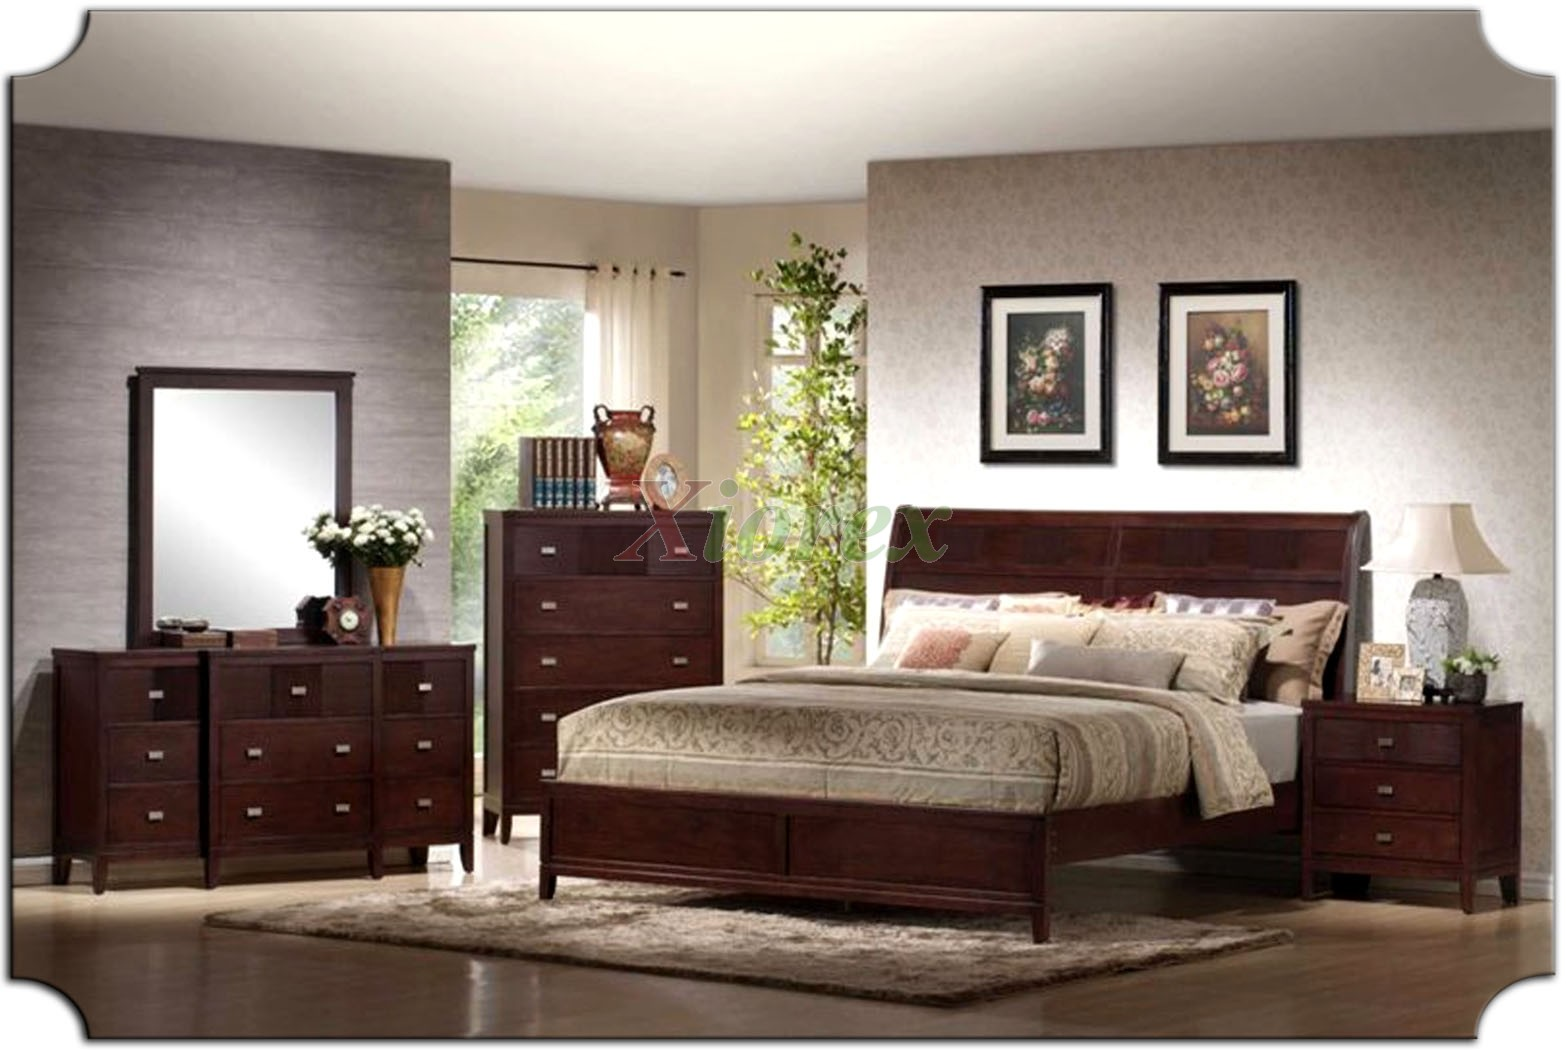 Platform bedroom furniture set with curved headboard beds for Bedroom furnishings